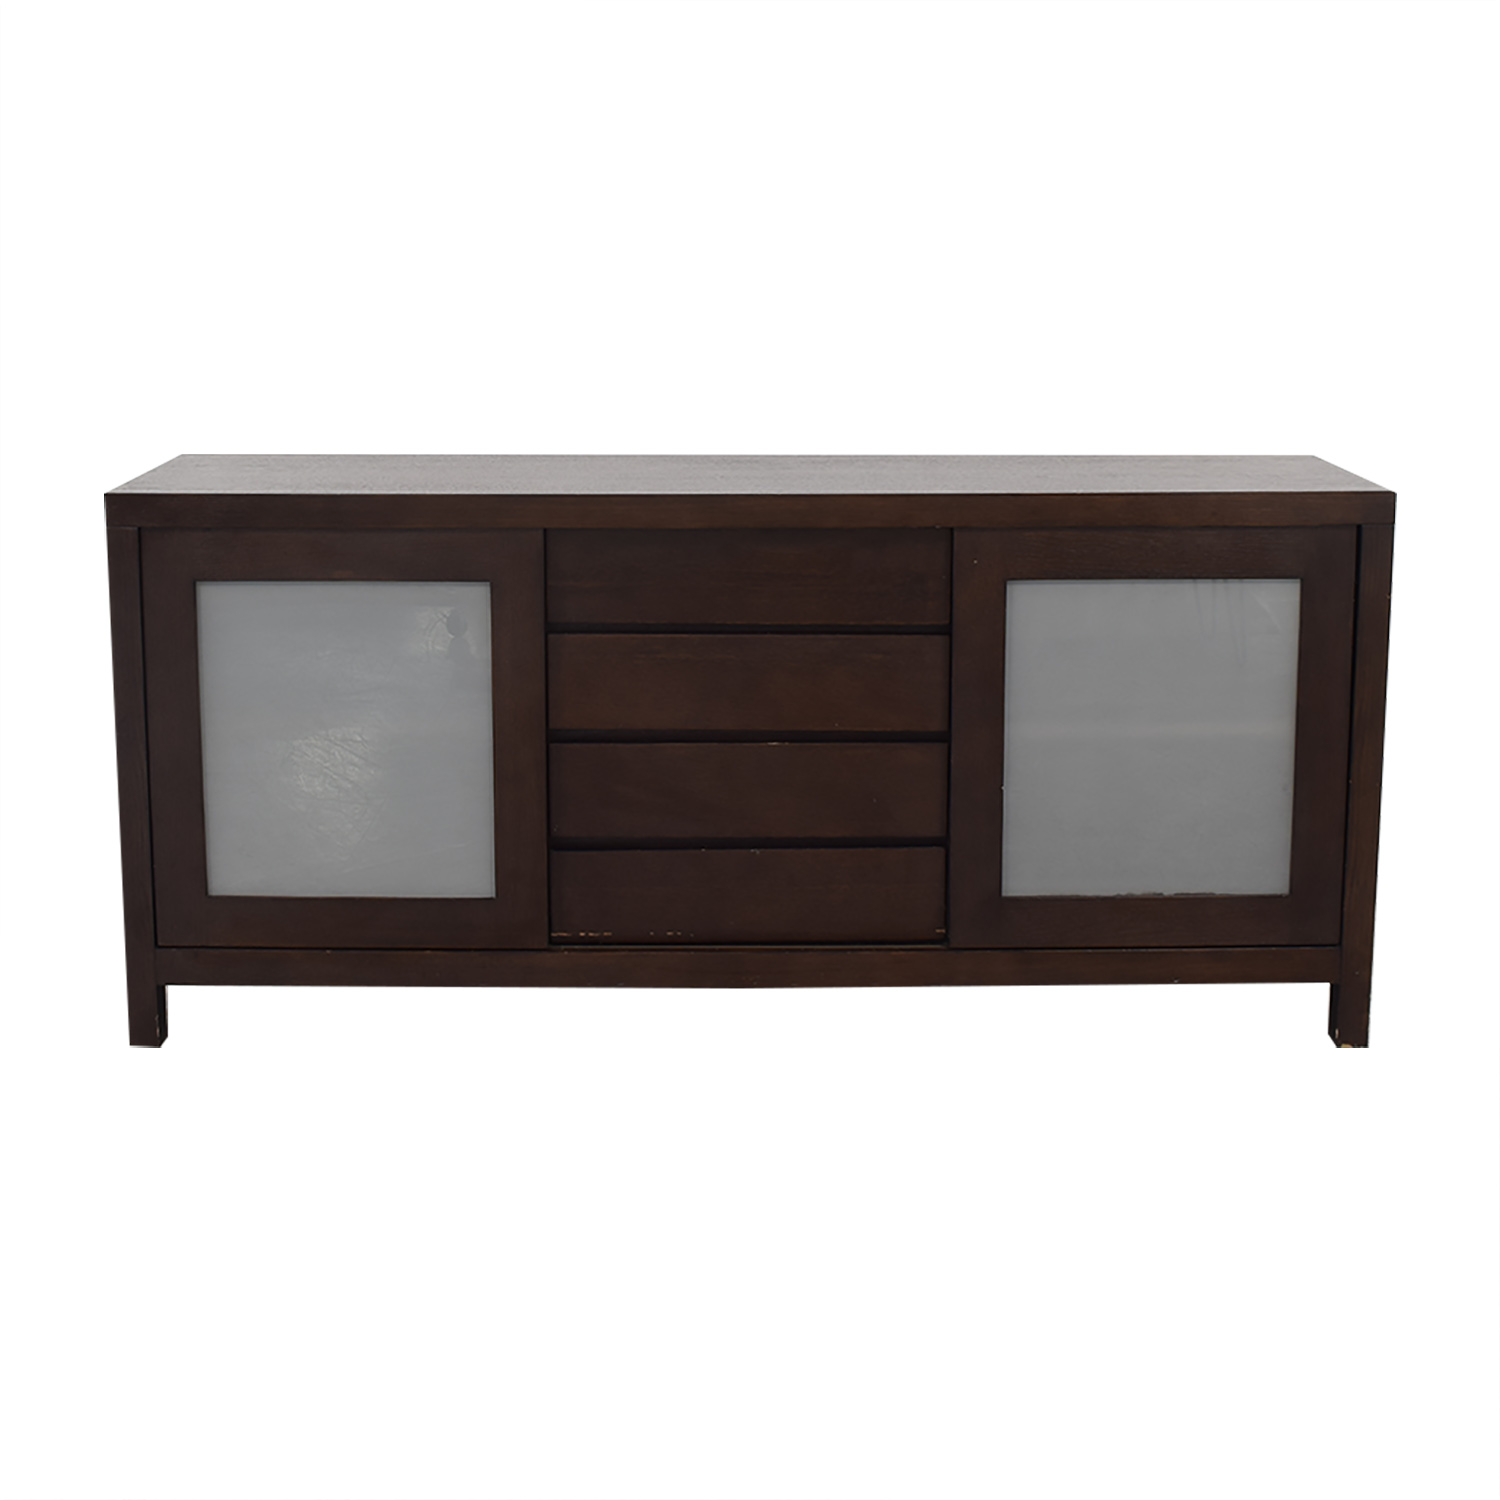 buy Crate & Barrel Crate & Barrel Sideboard with Cabinets online